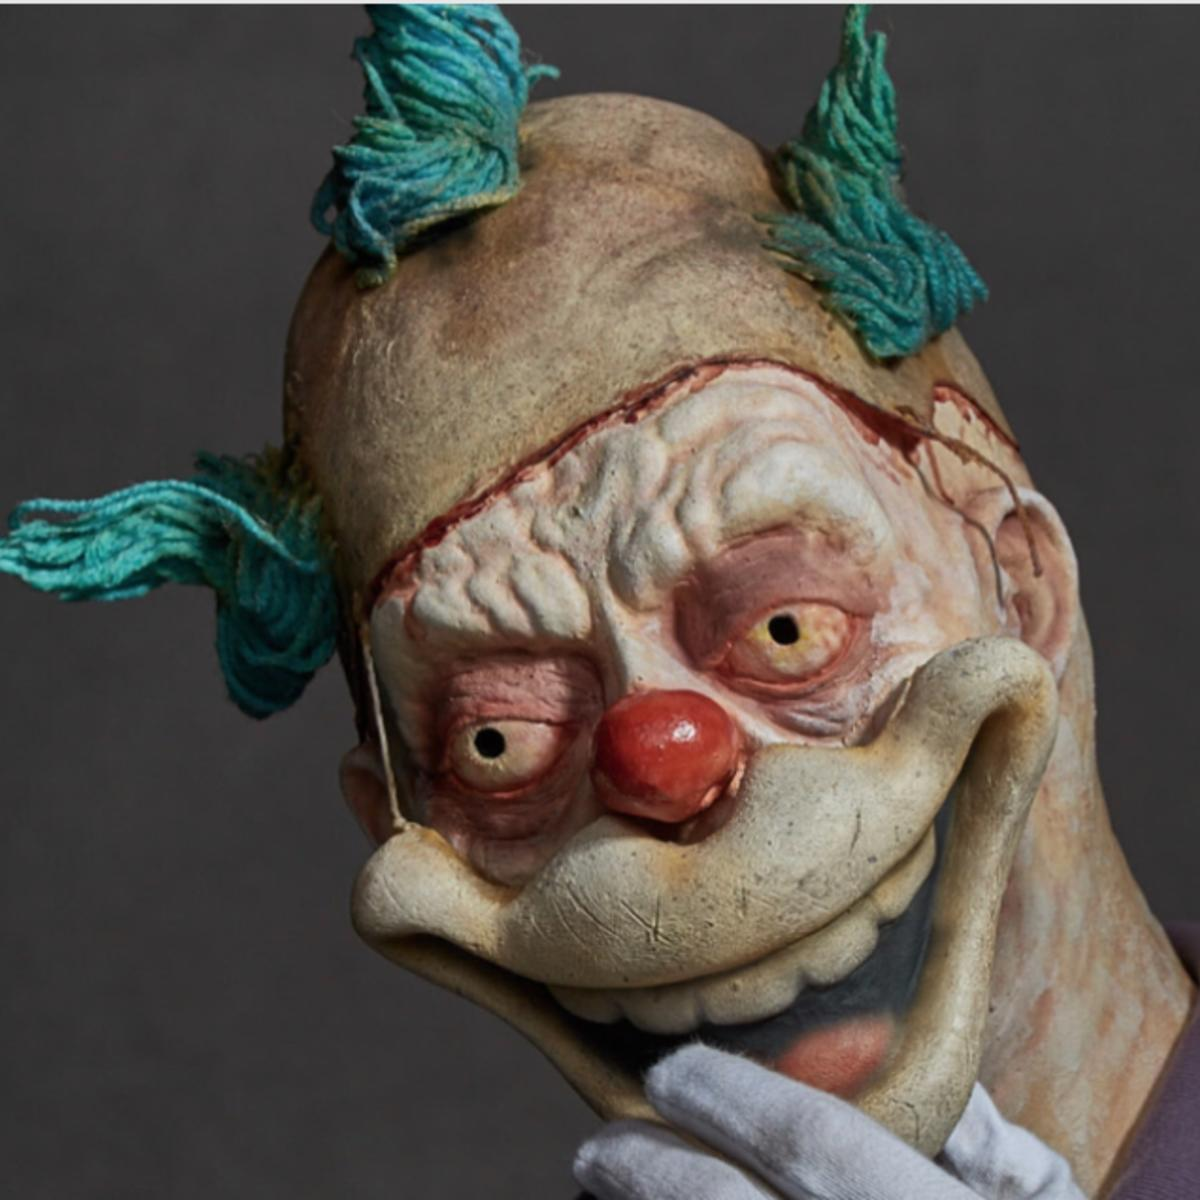 this mutant krusty the clown and twisty the clown mashup will give